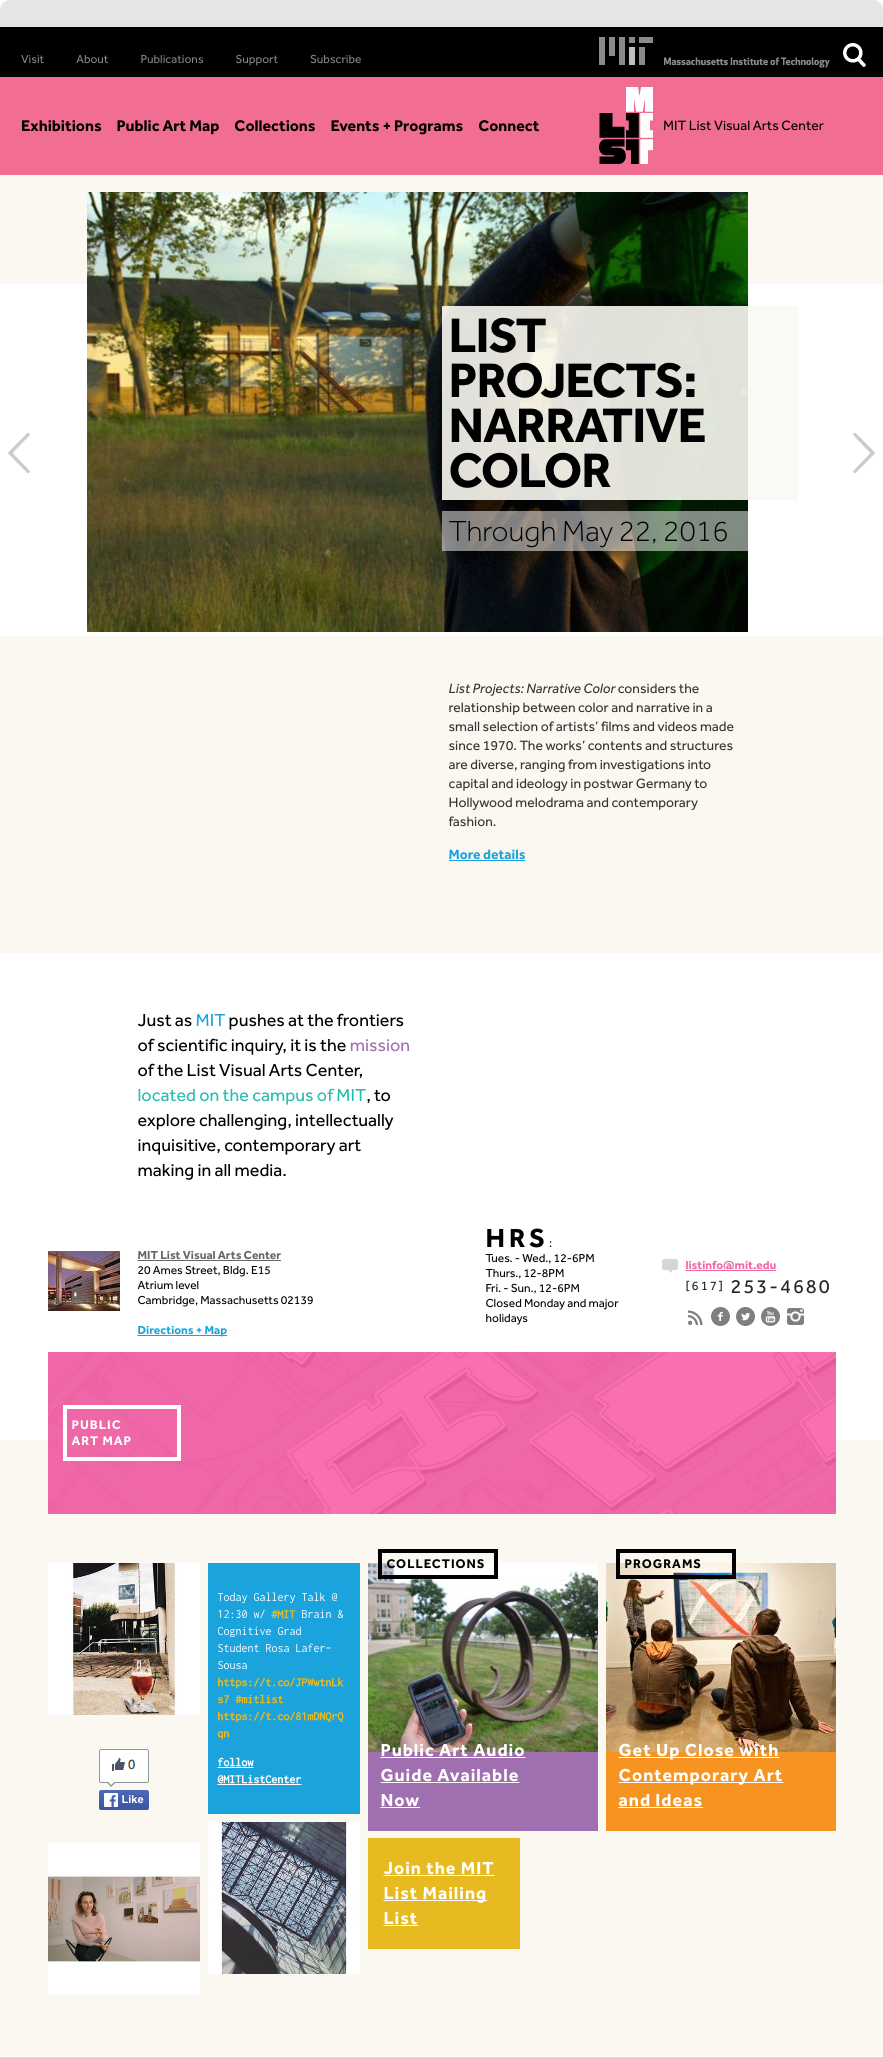 Screenshot of Exhibition Detail Page for MIT List Visual Arts Center